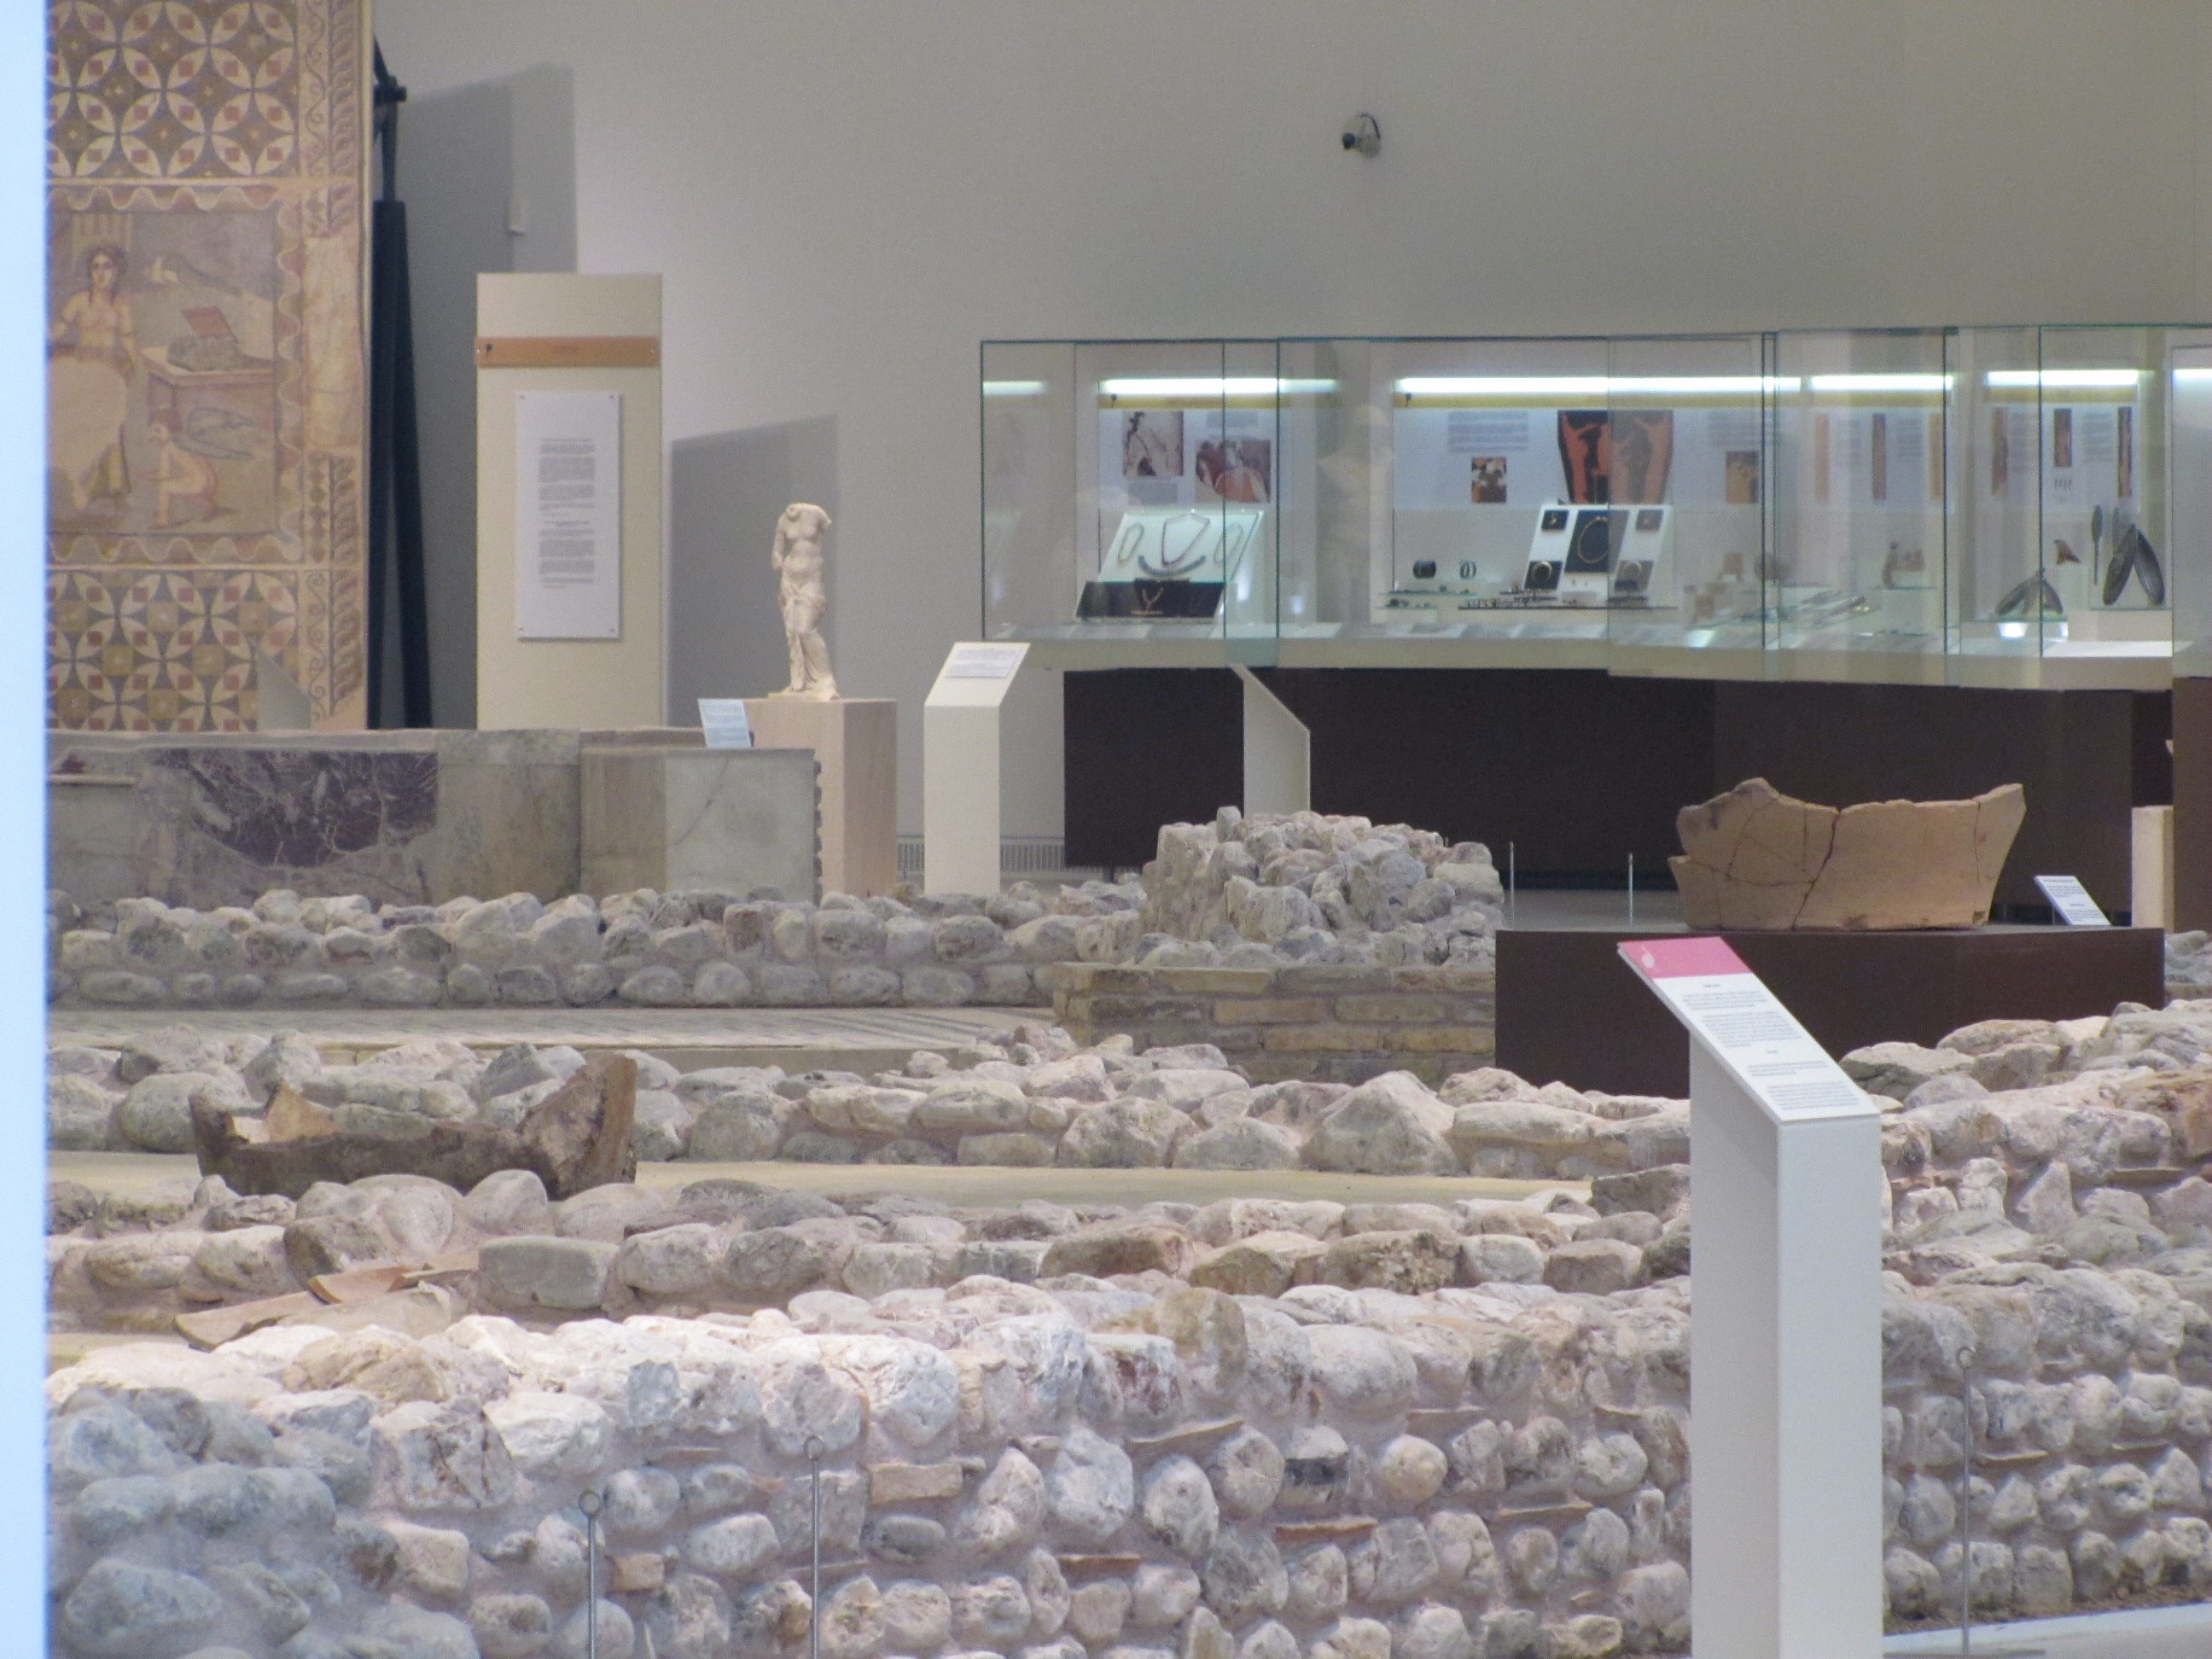 I Love Hellas: The Archaeological Museum of Patras